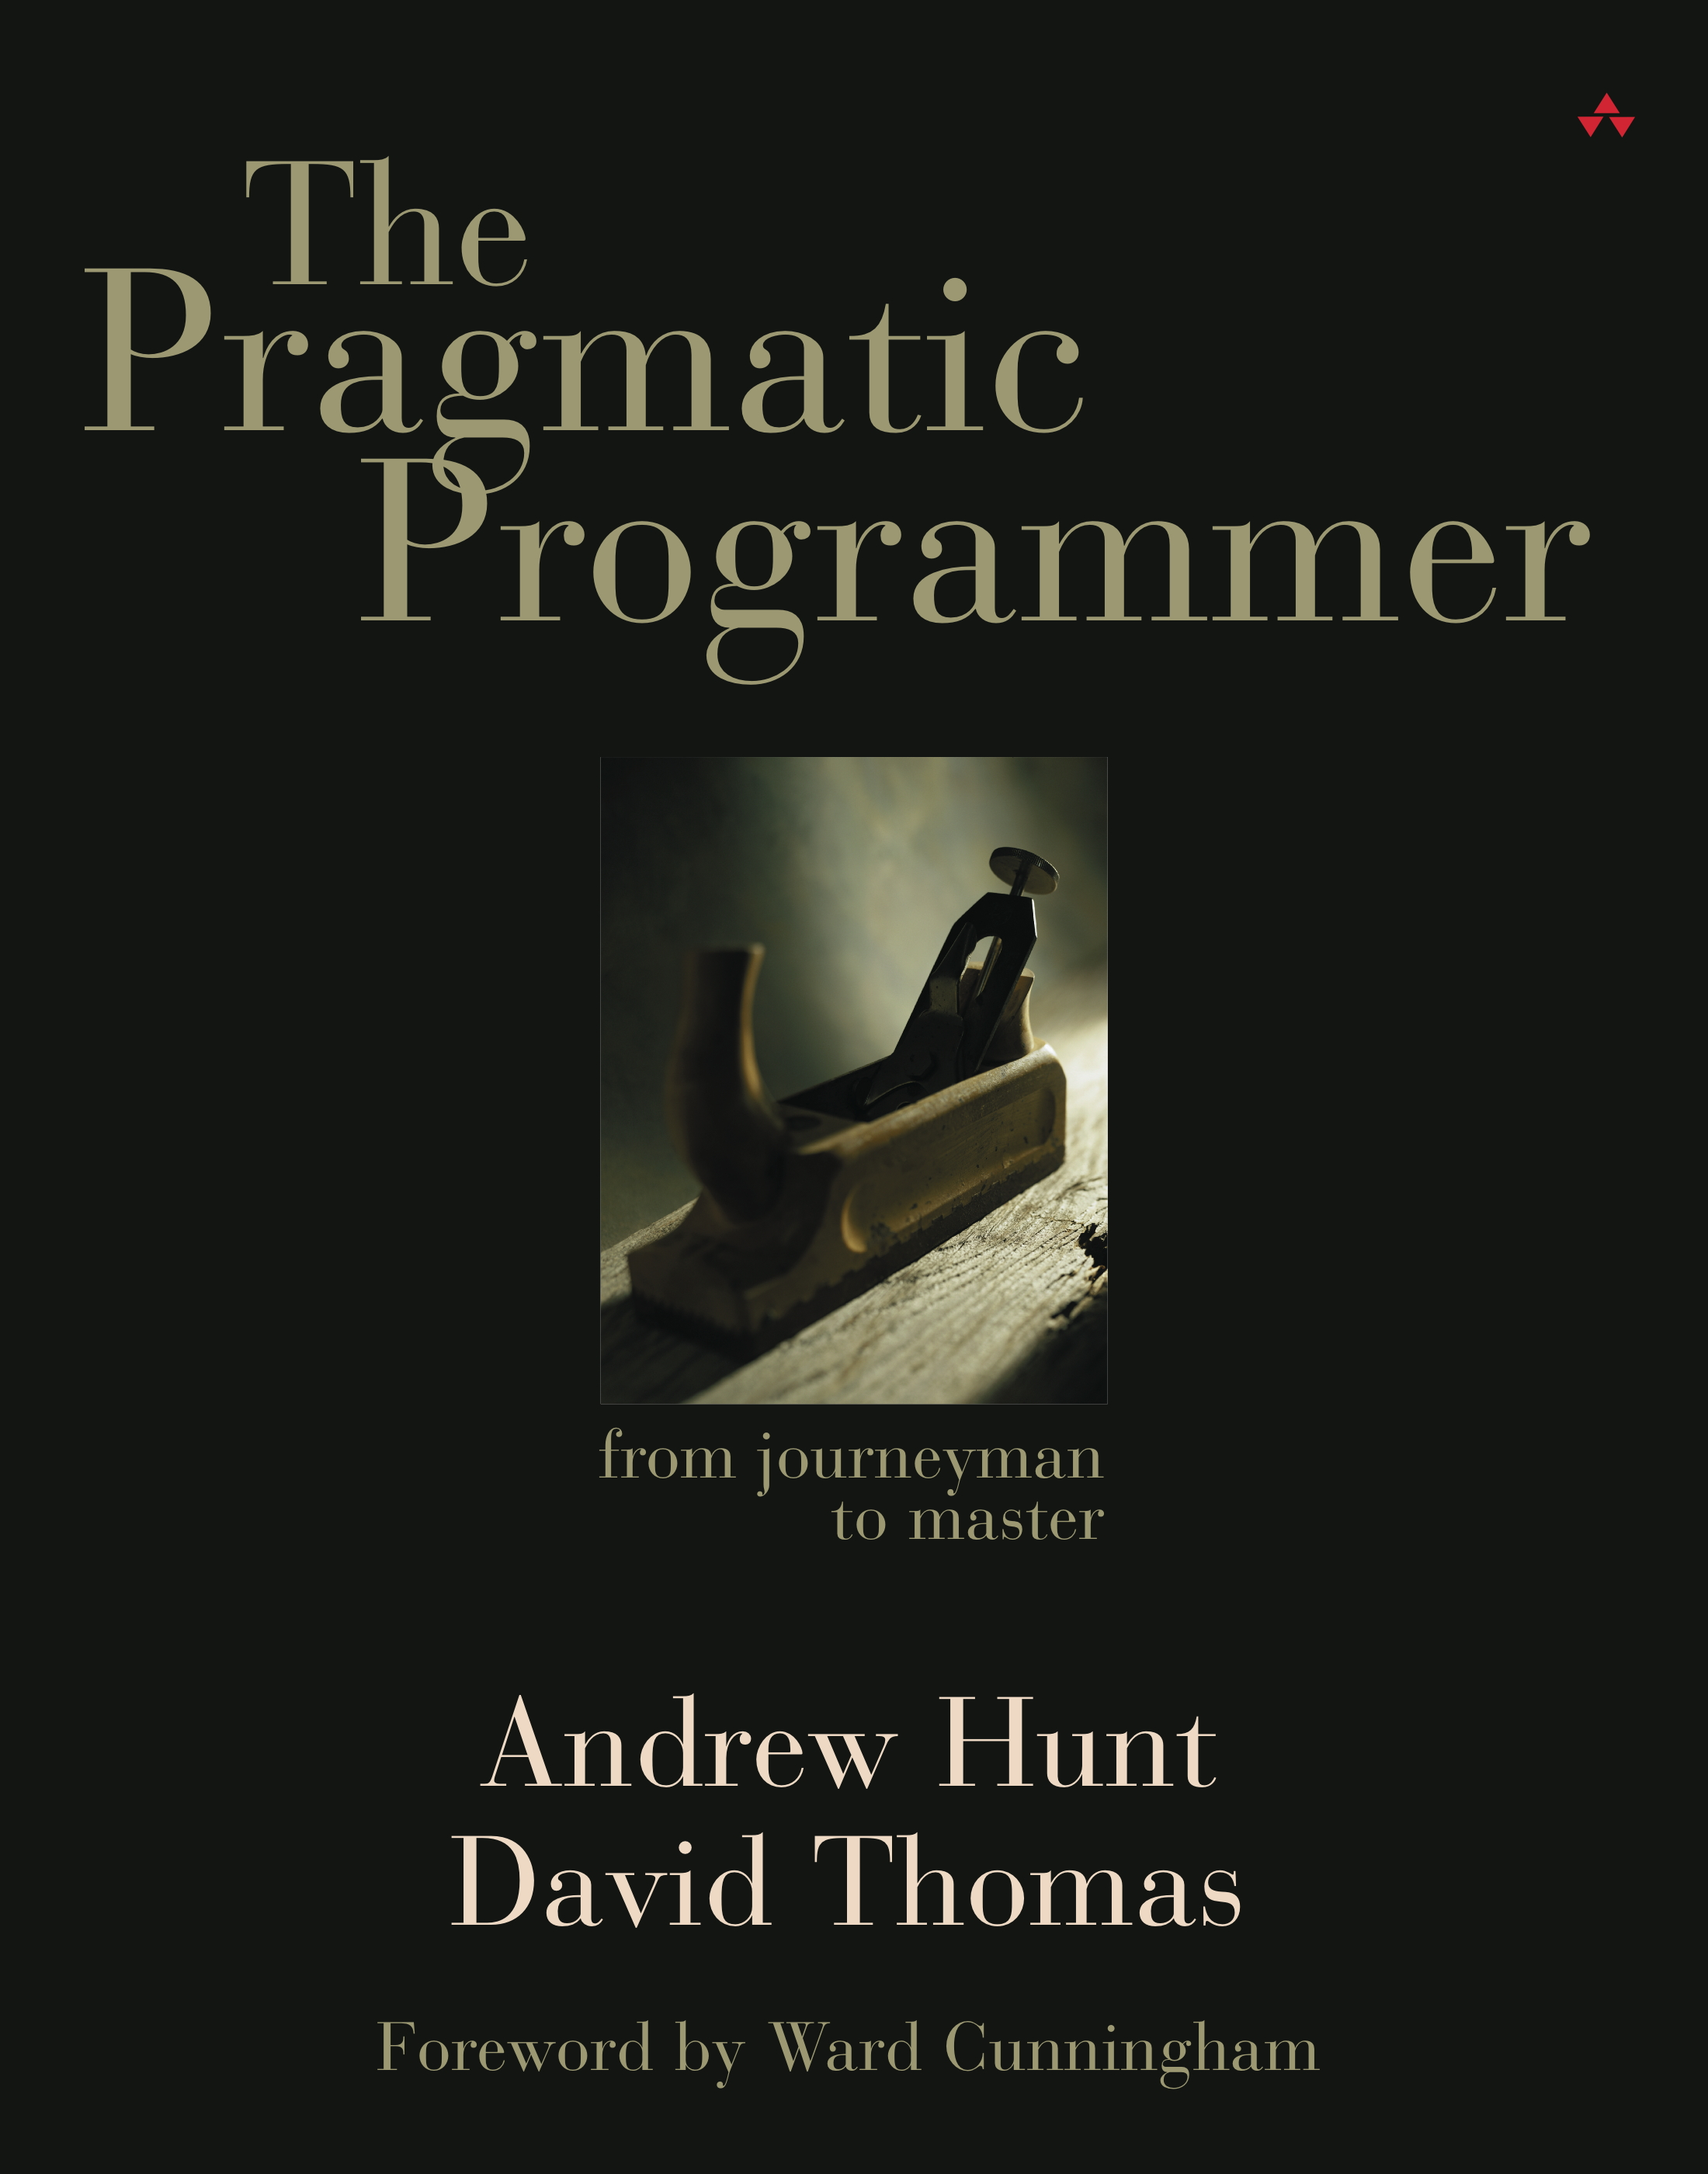 Cover image for The Pragmatic Programmer